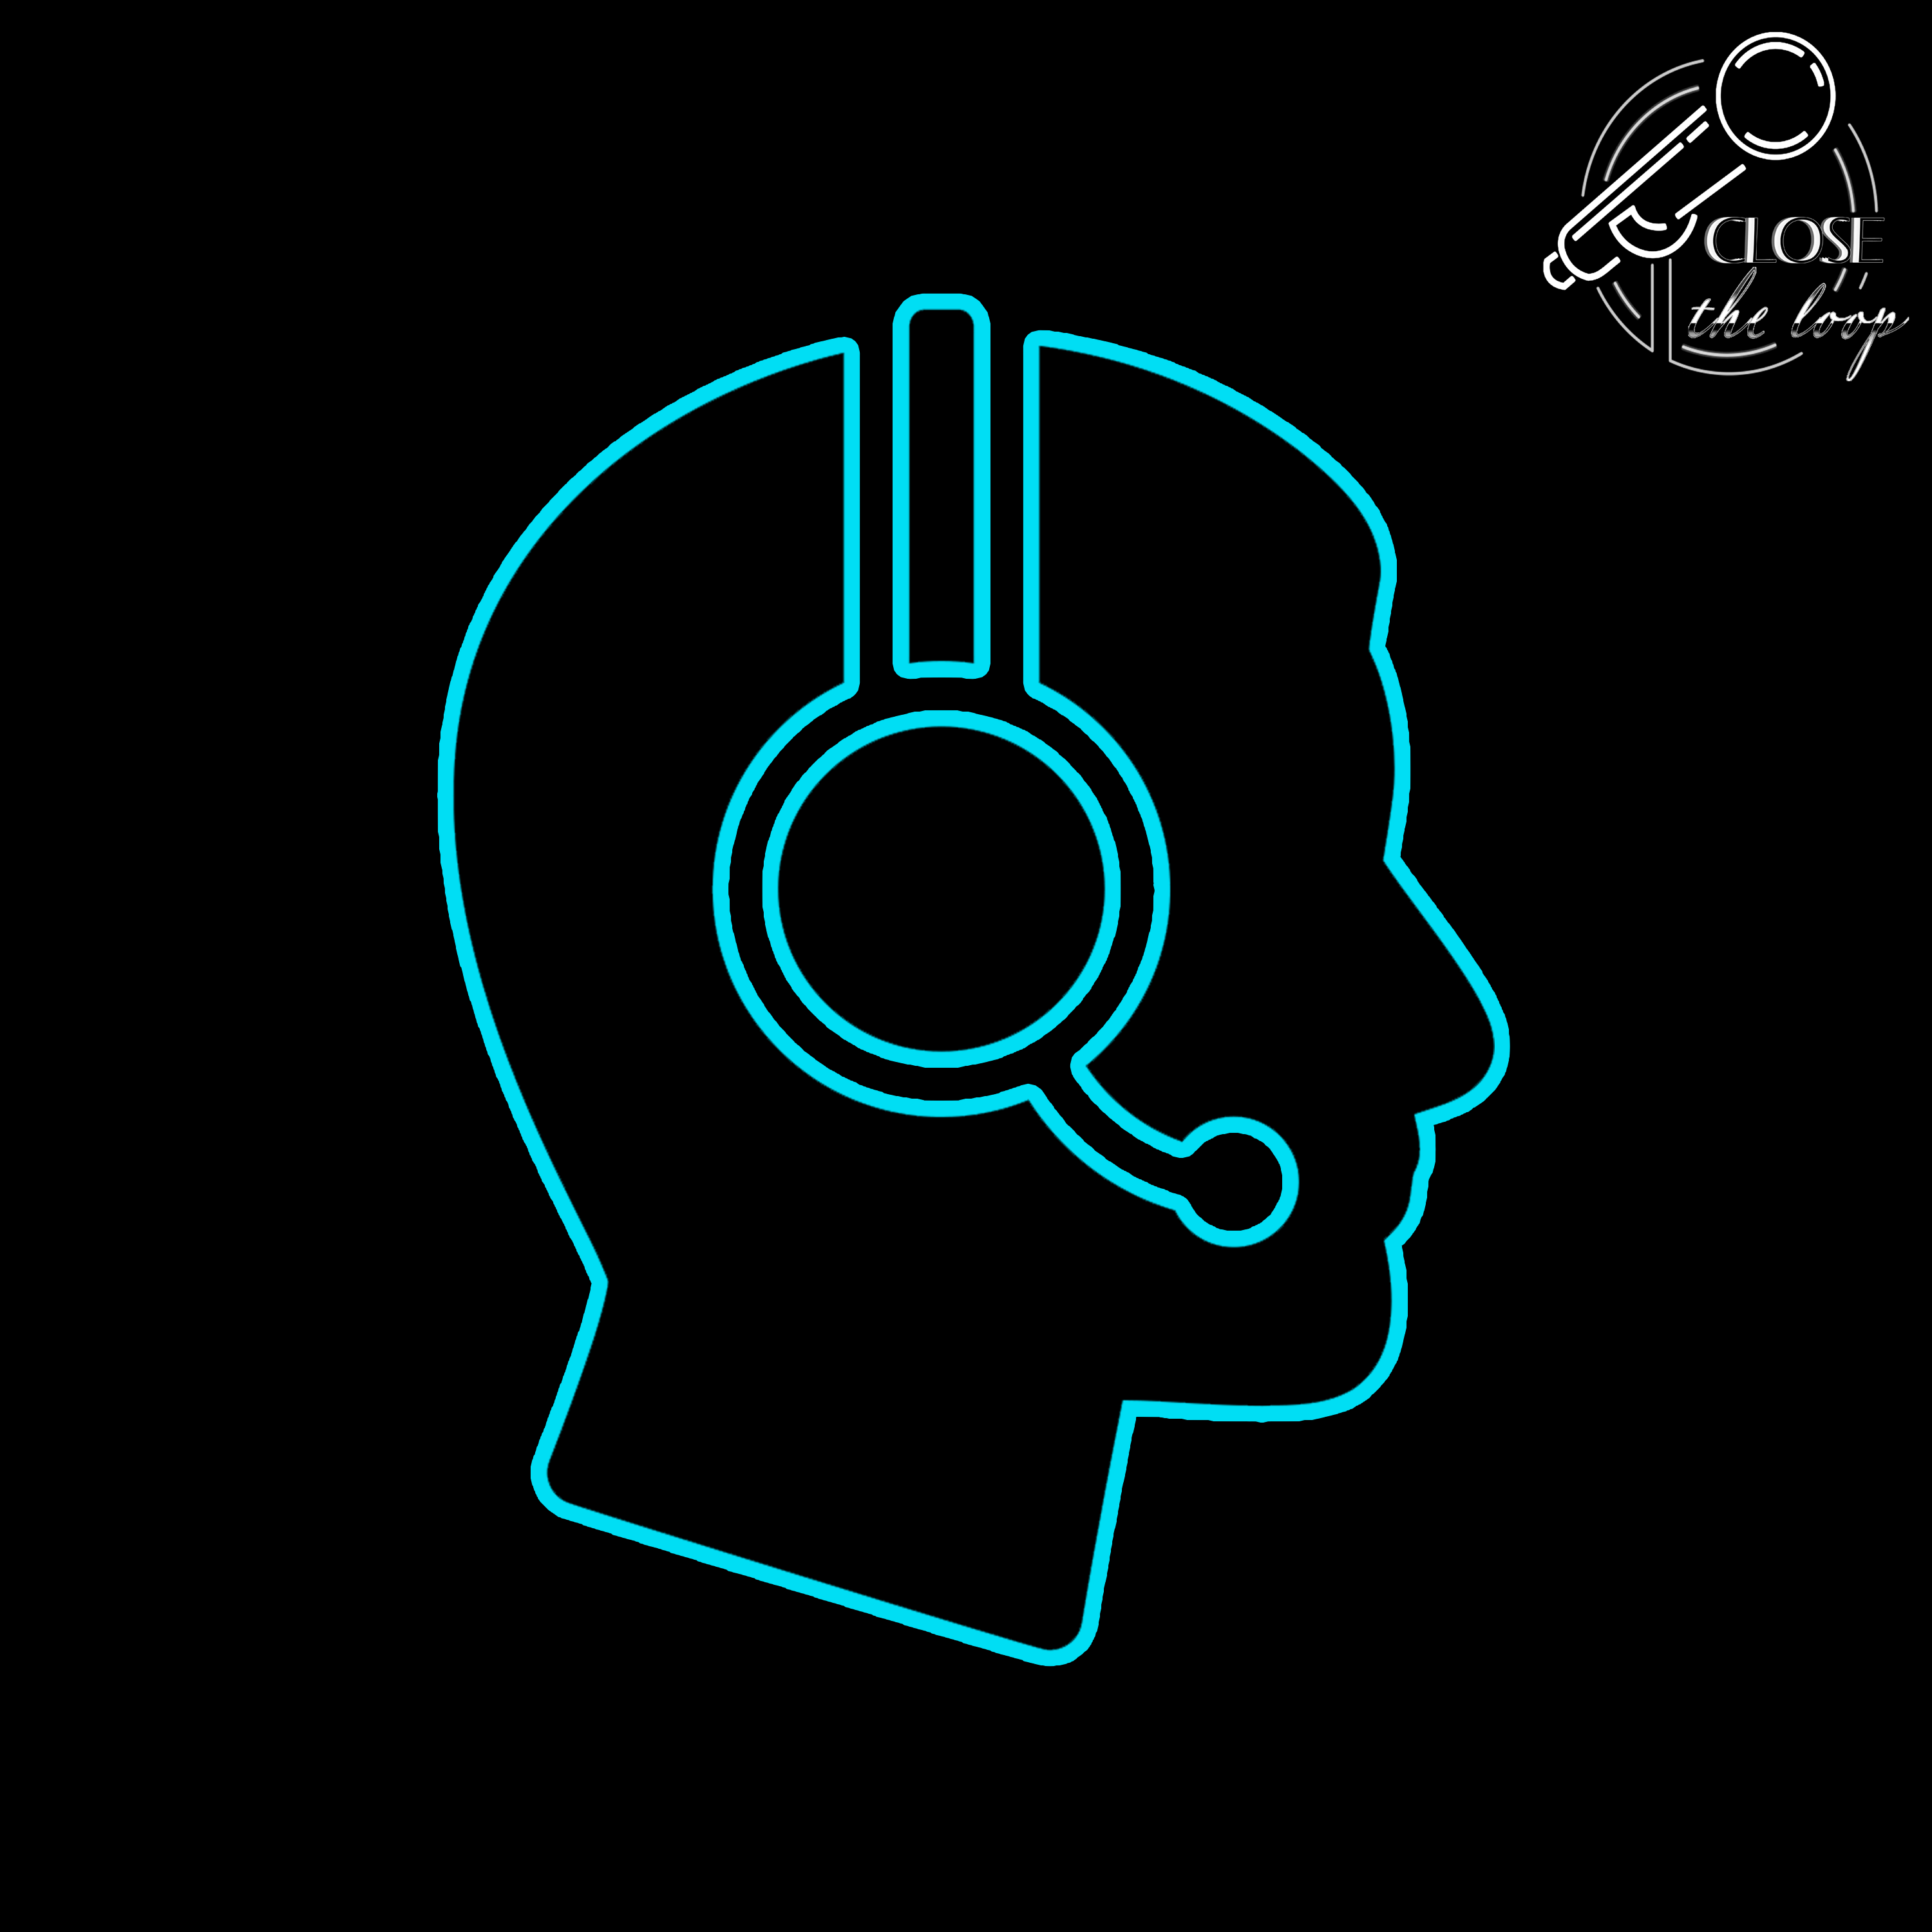 Artwork for podcast Close The Loop